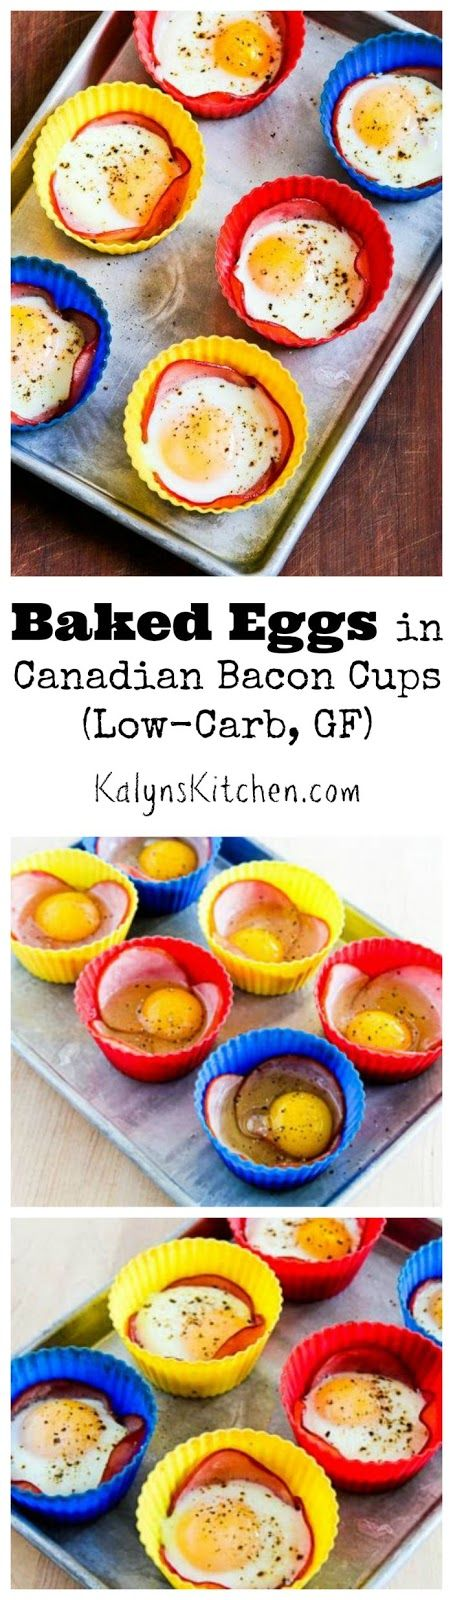 Baked Eggs in Canadian Bacon Cups are a fun idea for breakfast that's Low-Carb and Gluten-Free!  [from KalynsKitchen.com]